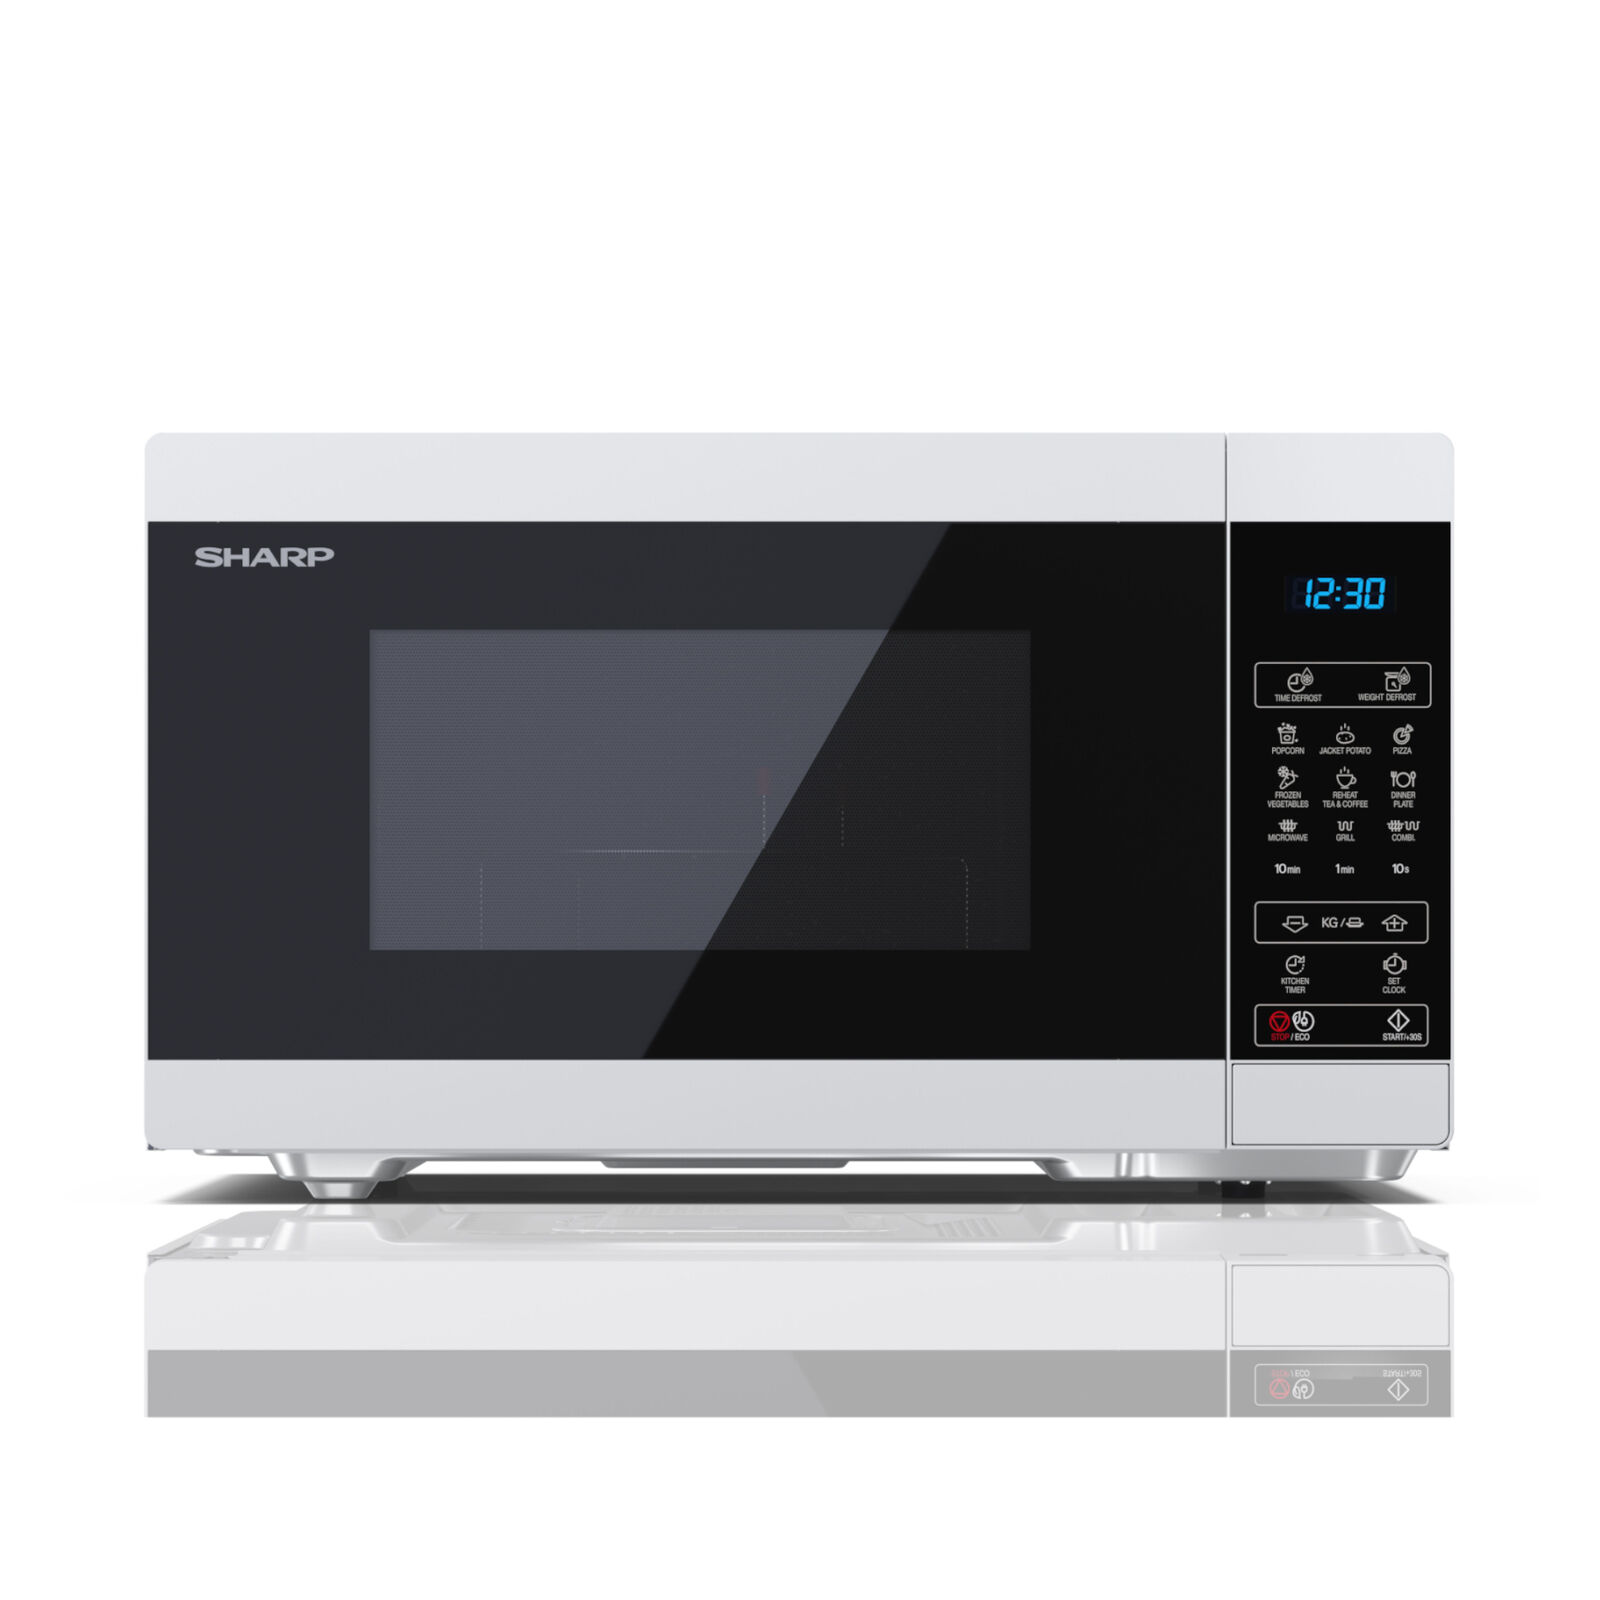 Convection Oven Microwave Grill Daewoo